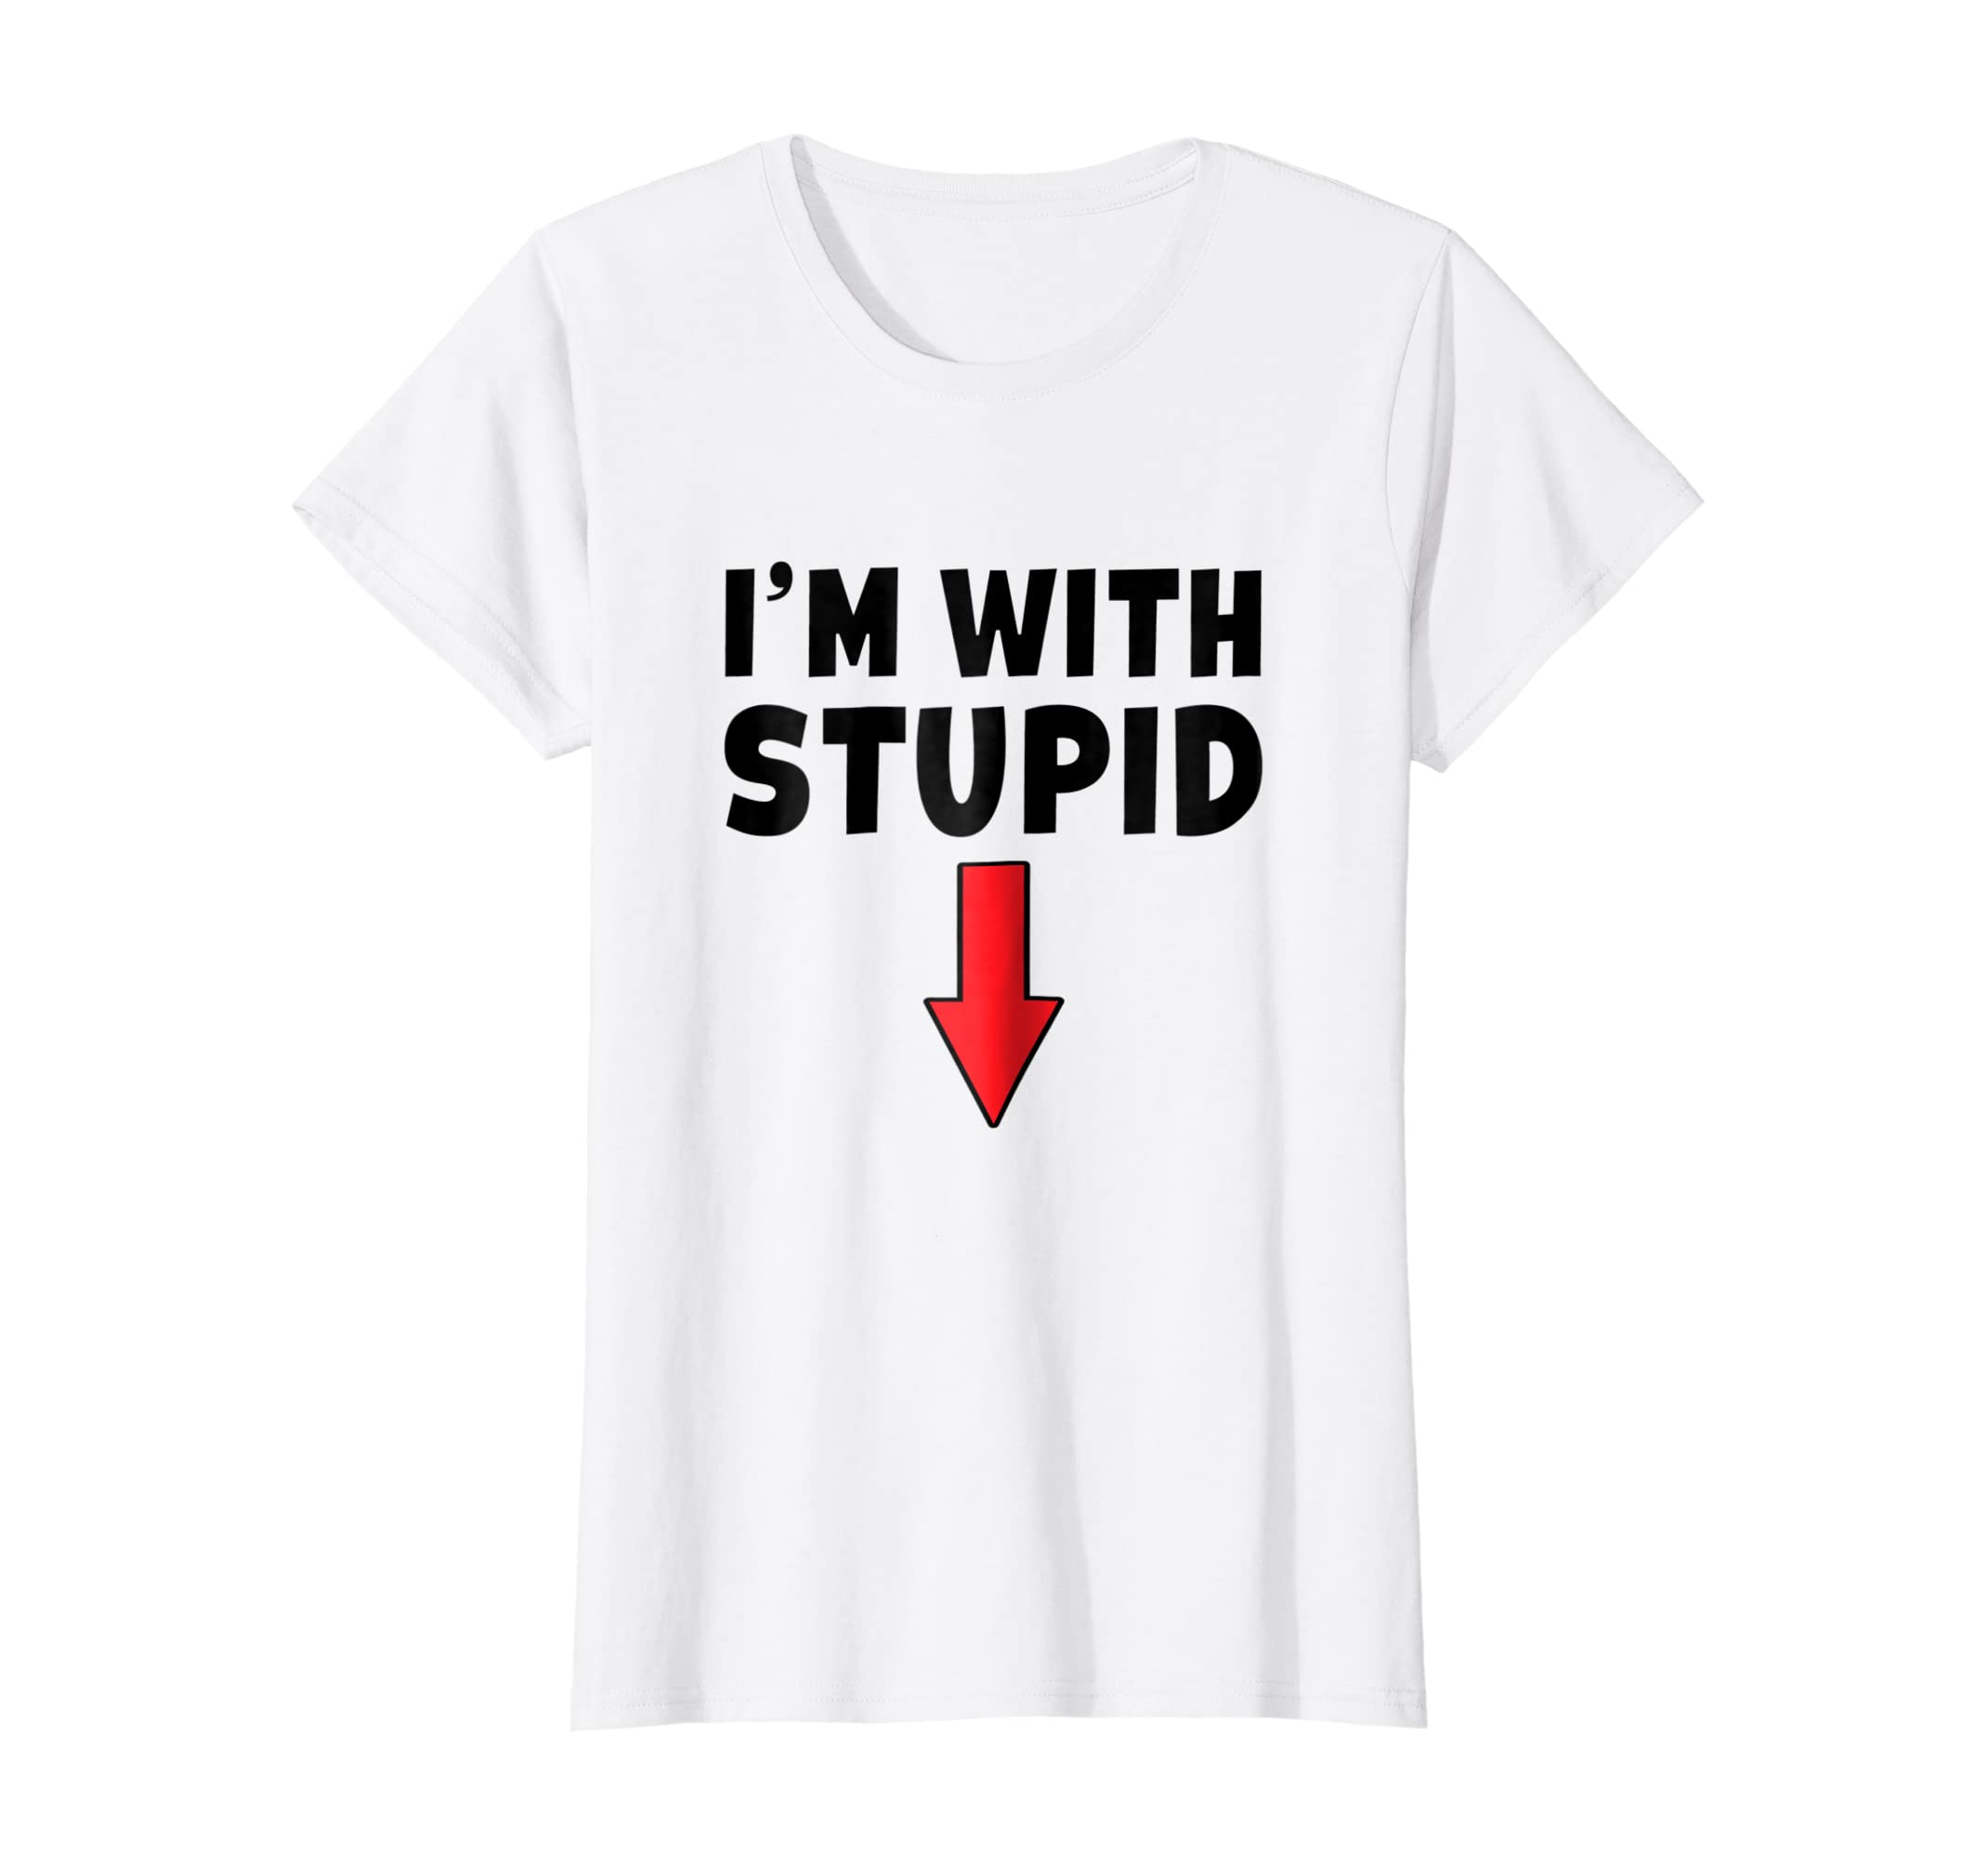 Stupid T Shirts >> I M With Stupid T Shirt Pointing Down Funny Prank Joke Gift